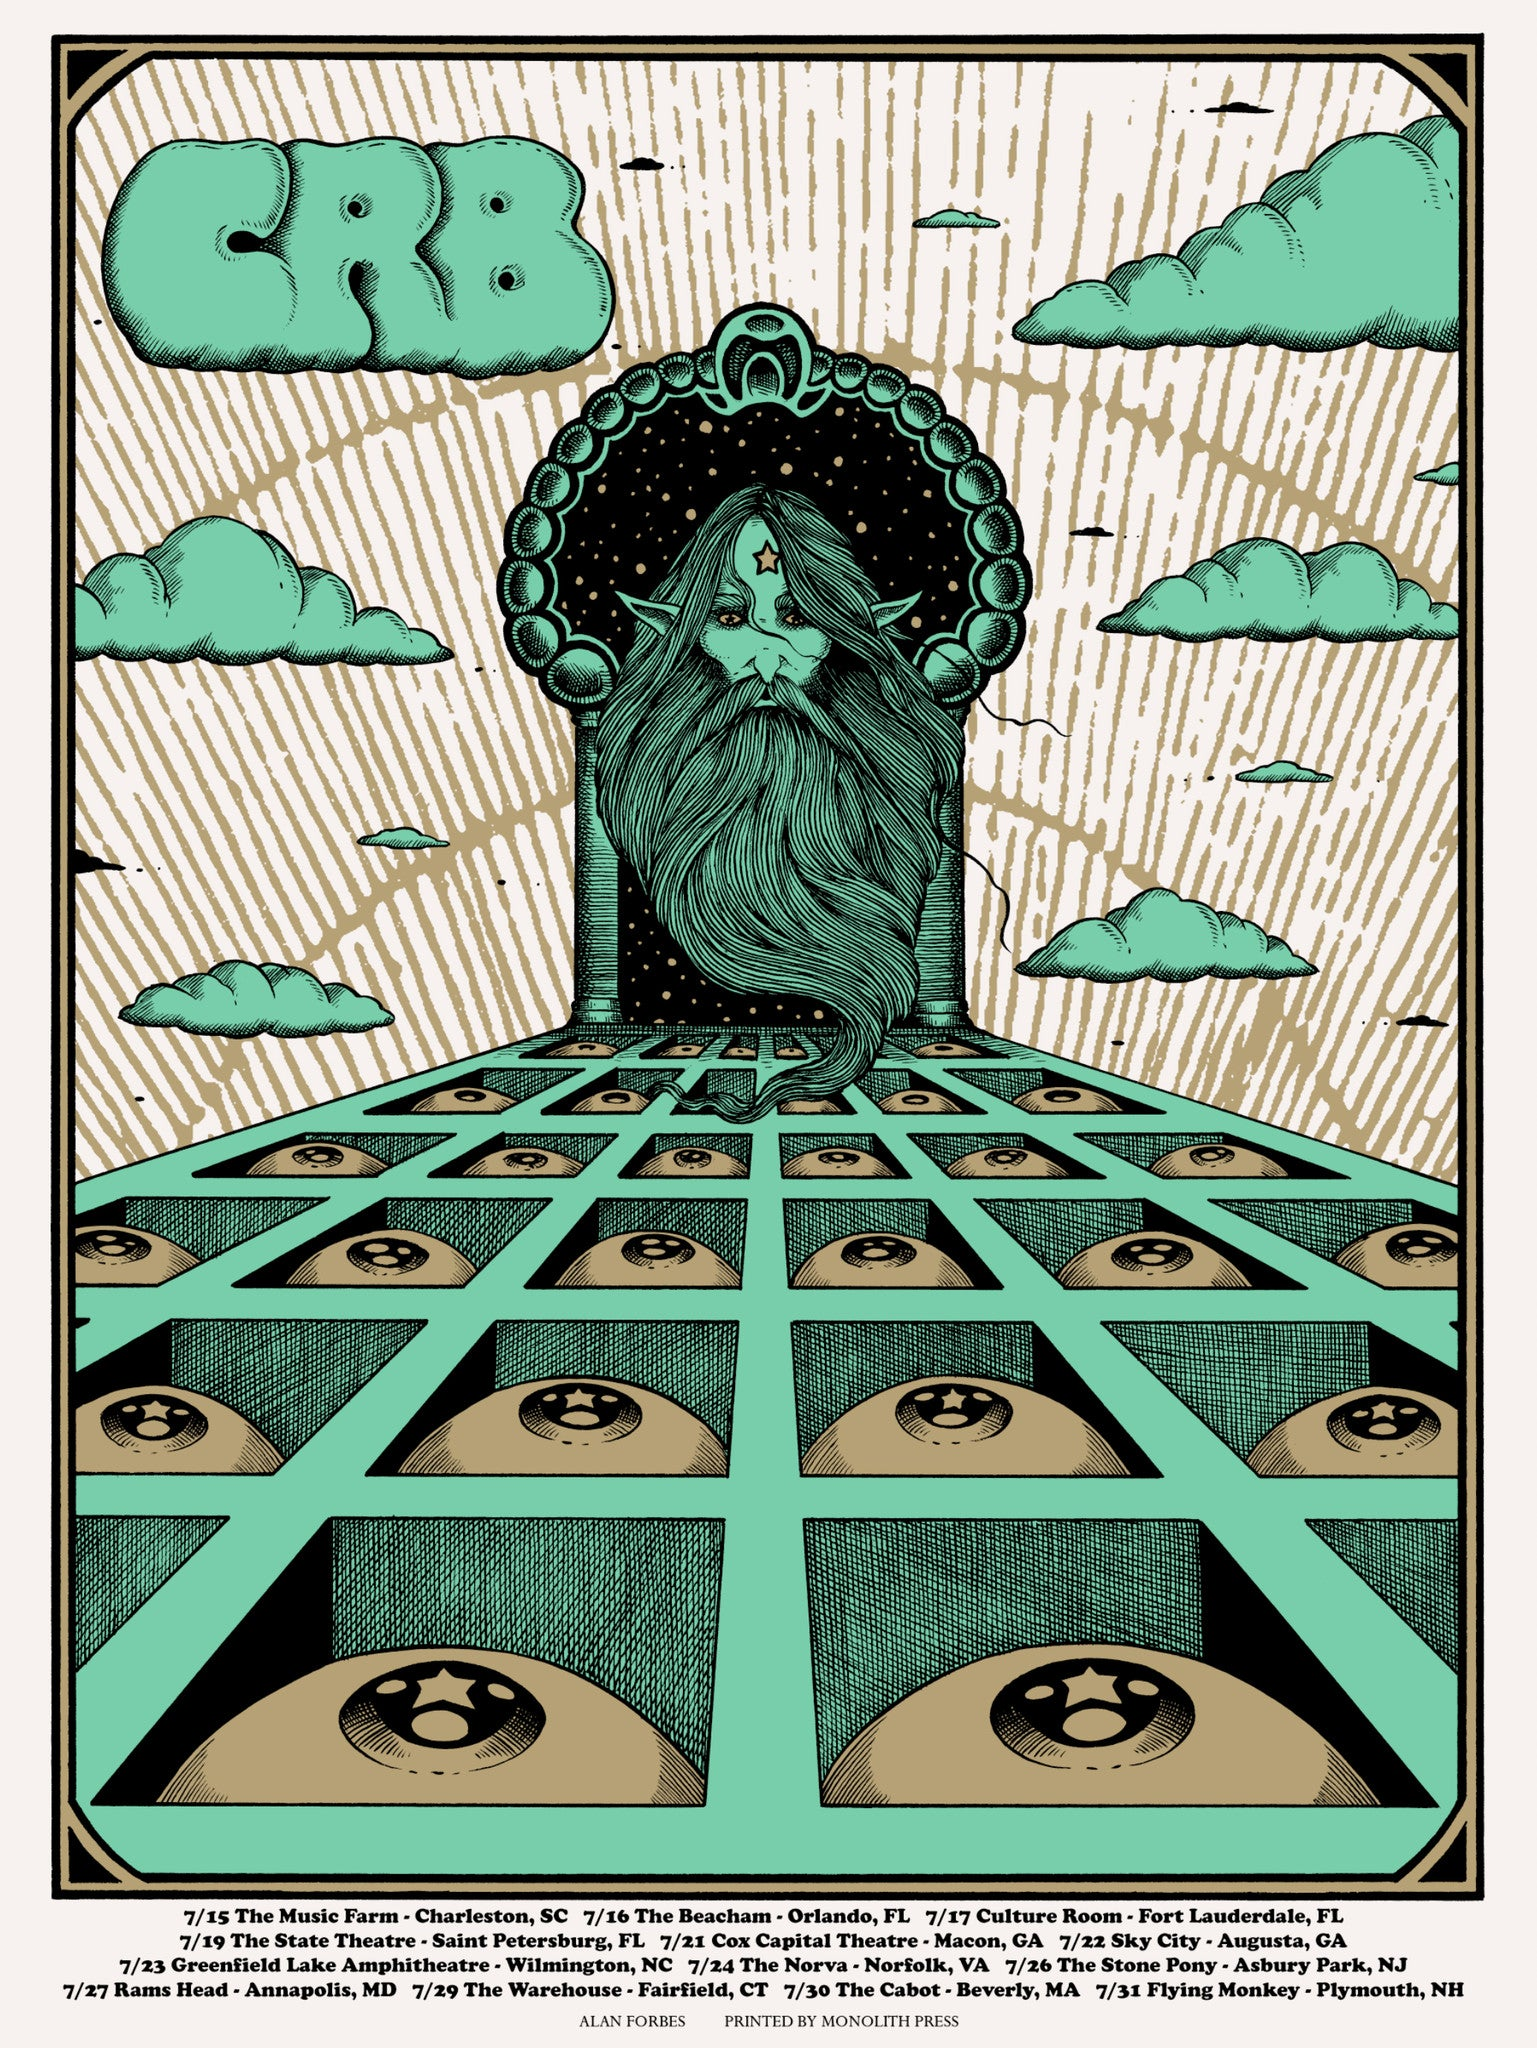 THE CHRIS ROBINSON BROTHERHOOD - July Tour 2016 (7/15/16 - 7/31/16) by Alan Forbes LAST COPIES